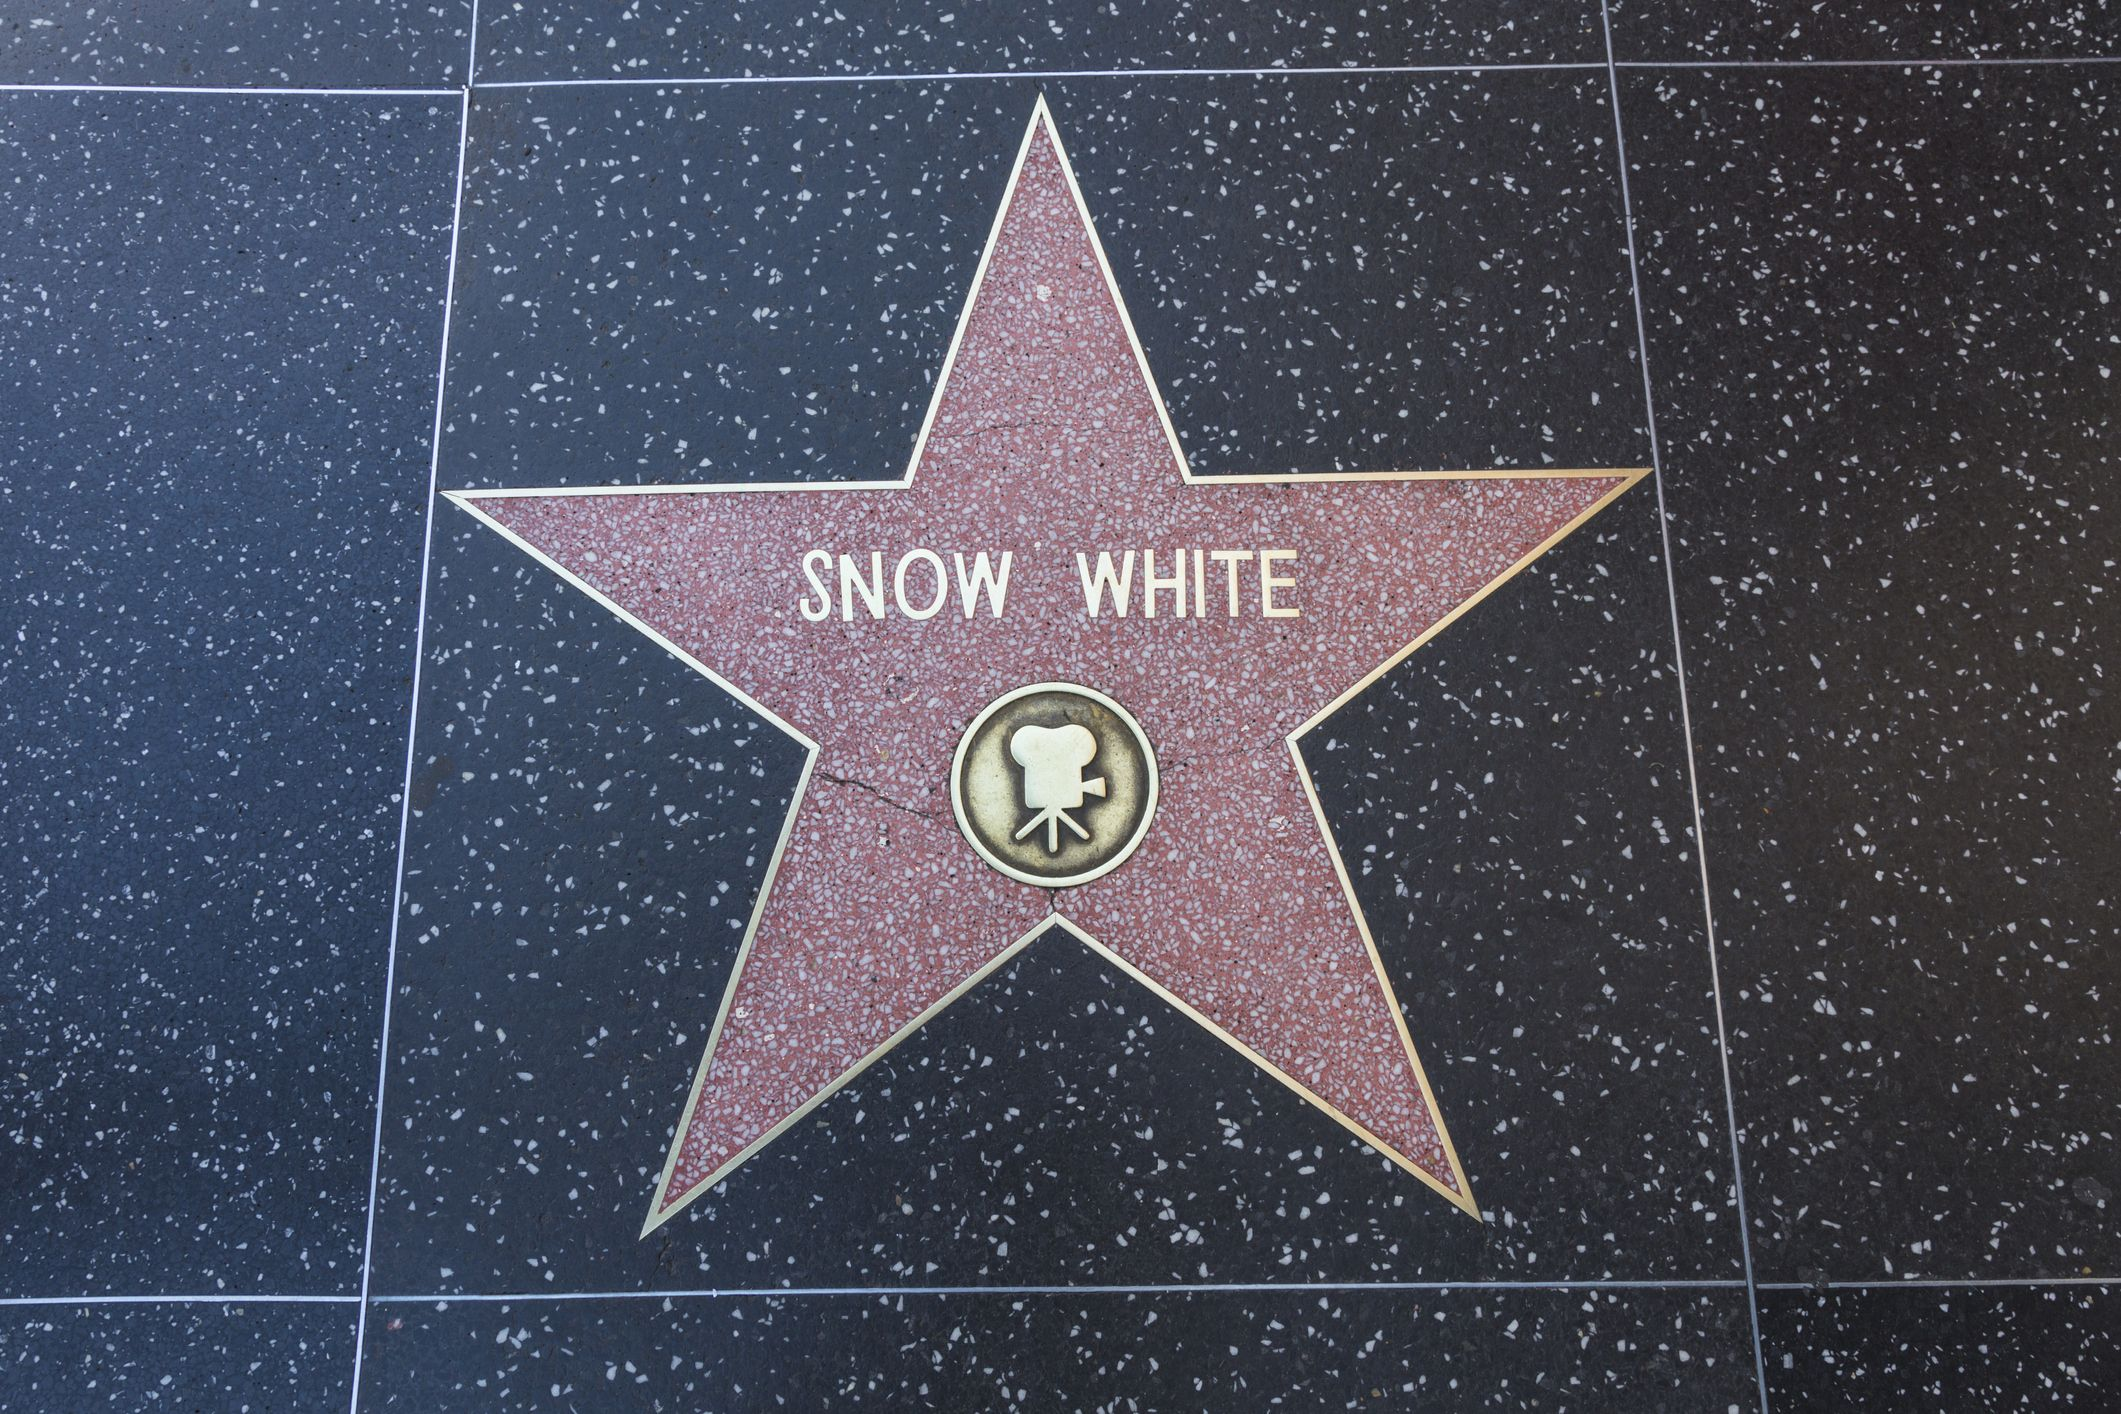 Hollywood Walk of Fame Star for Snow White-